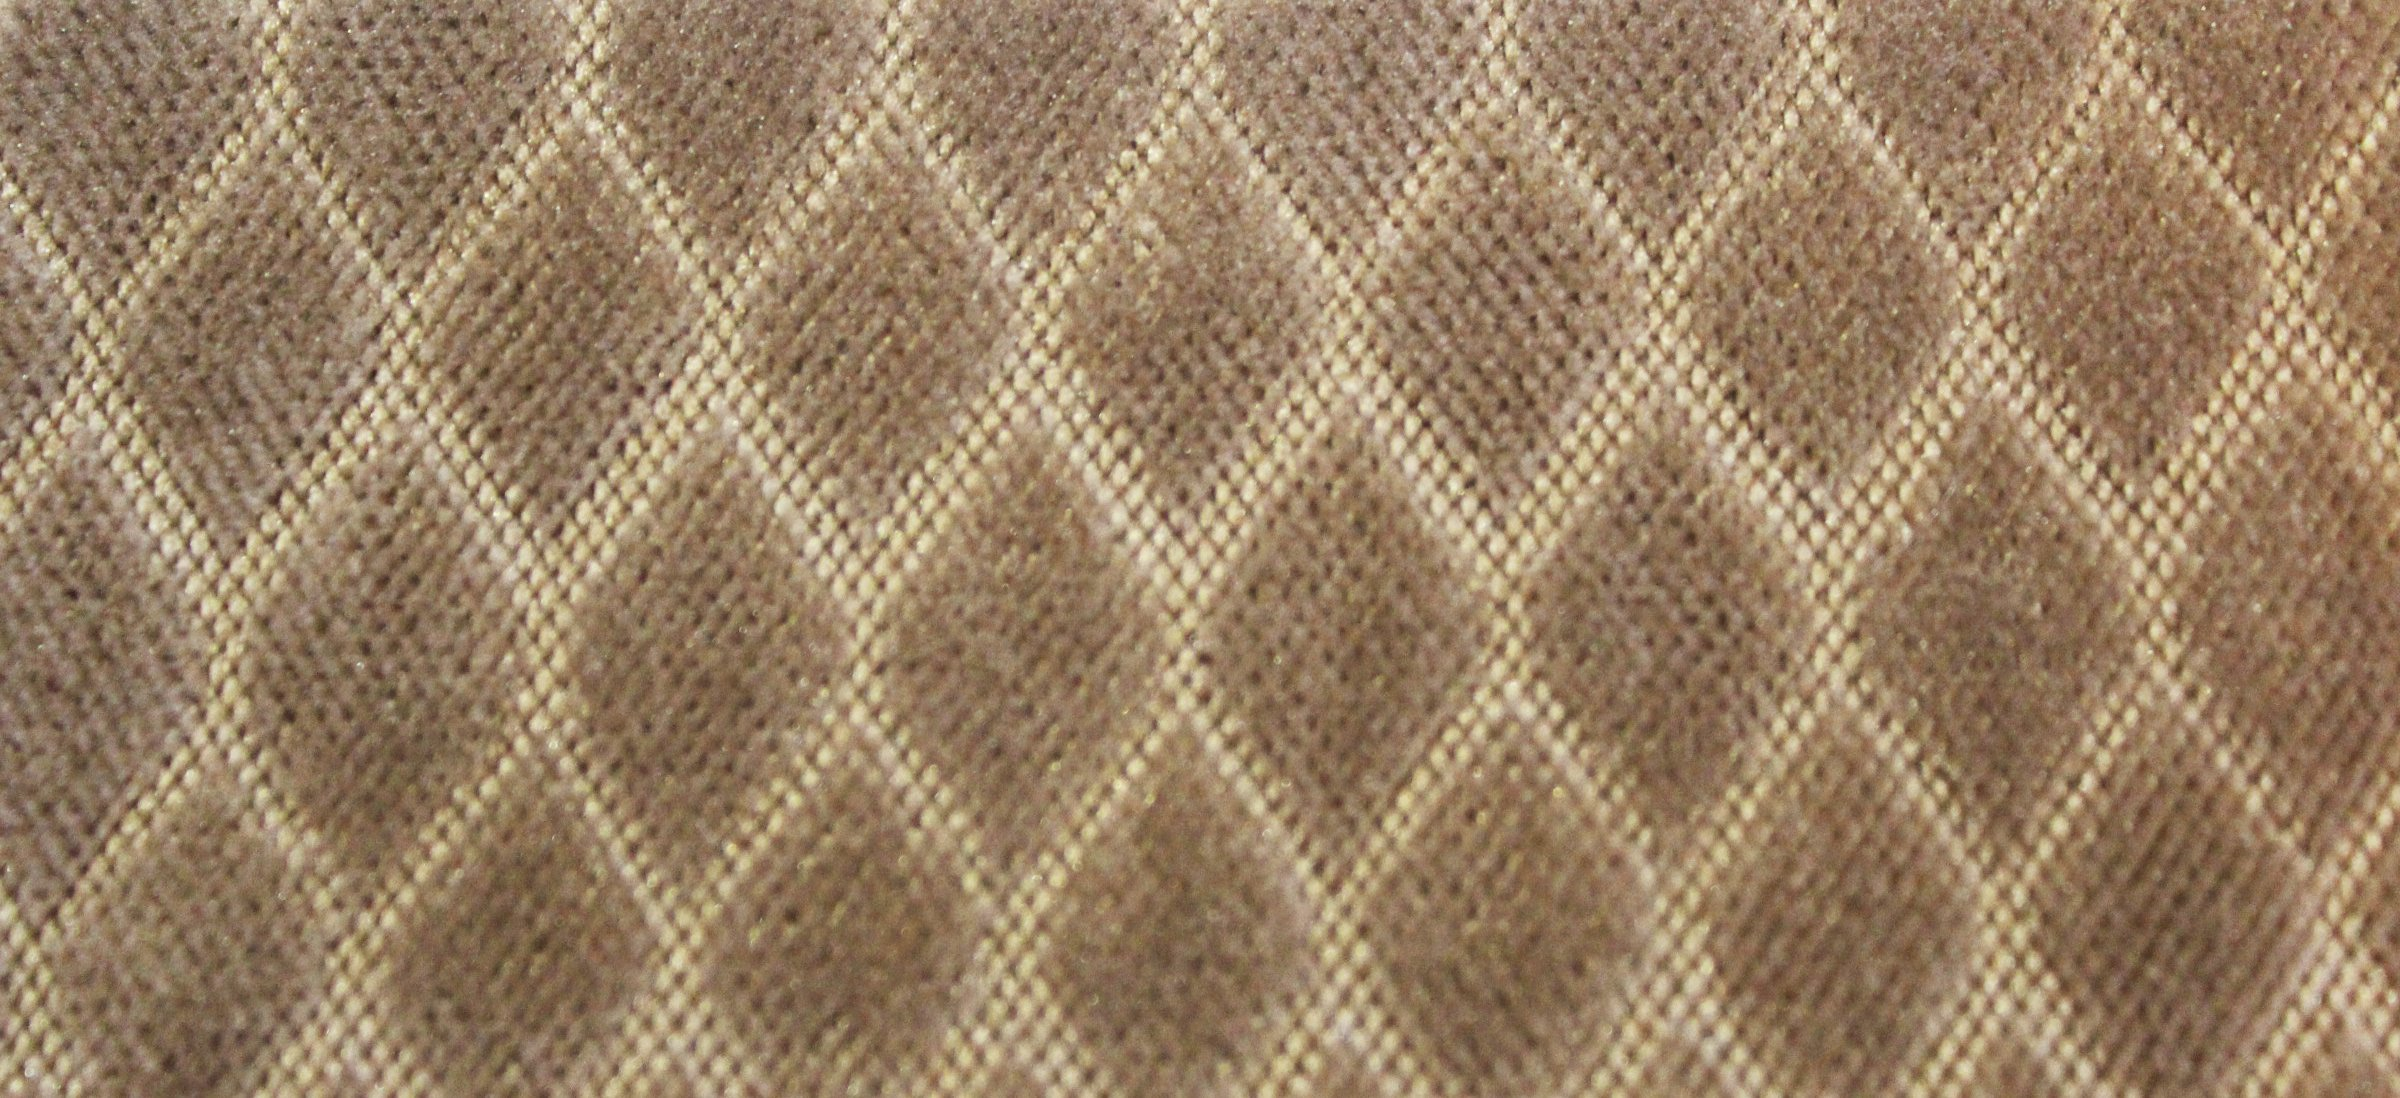 Sure Fit Stretch Royal Diamond 2-Piece - Loveseat Slipcover  - Taupe (SF43404) by Surefit (Image #2)